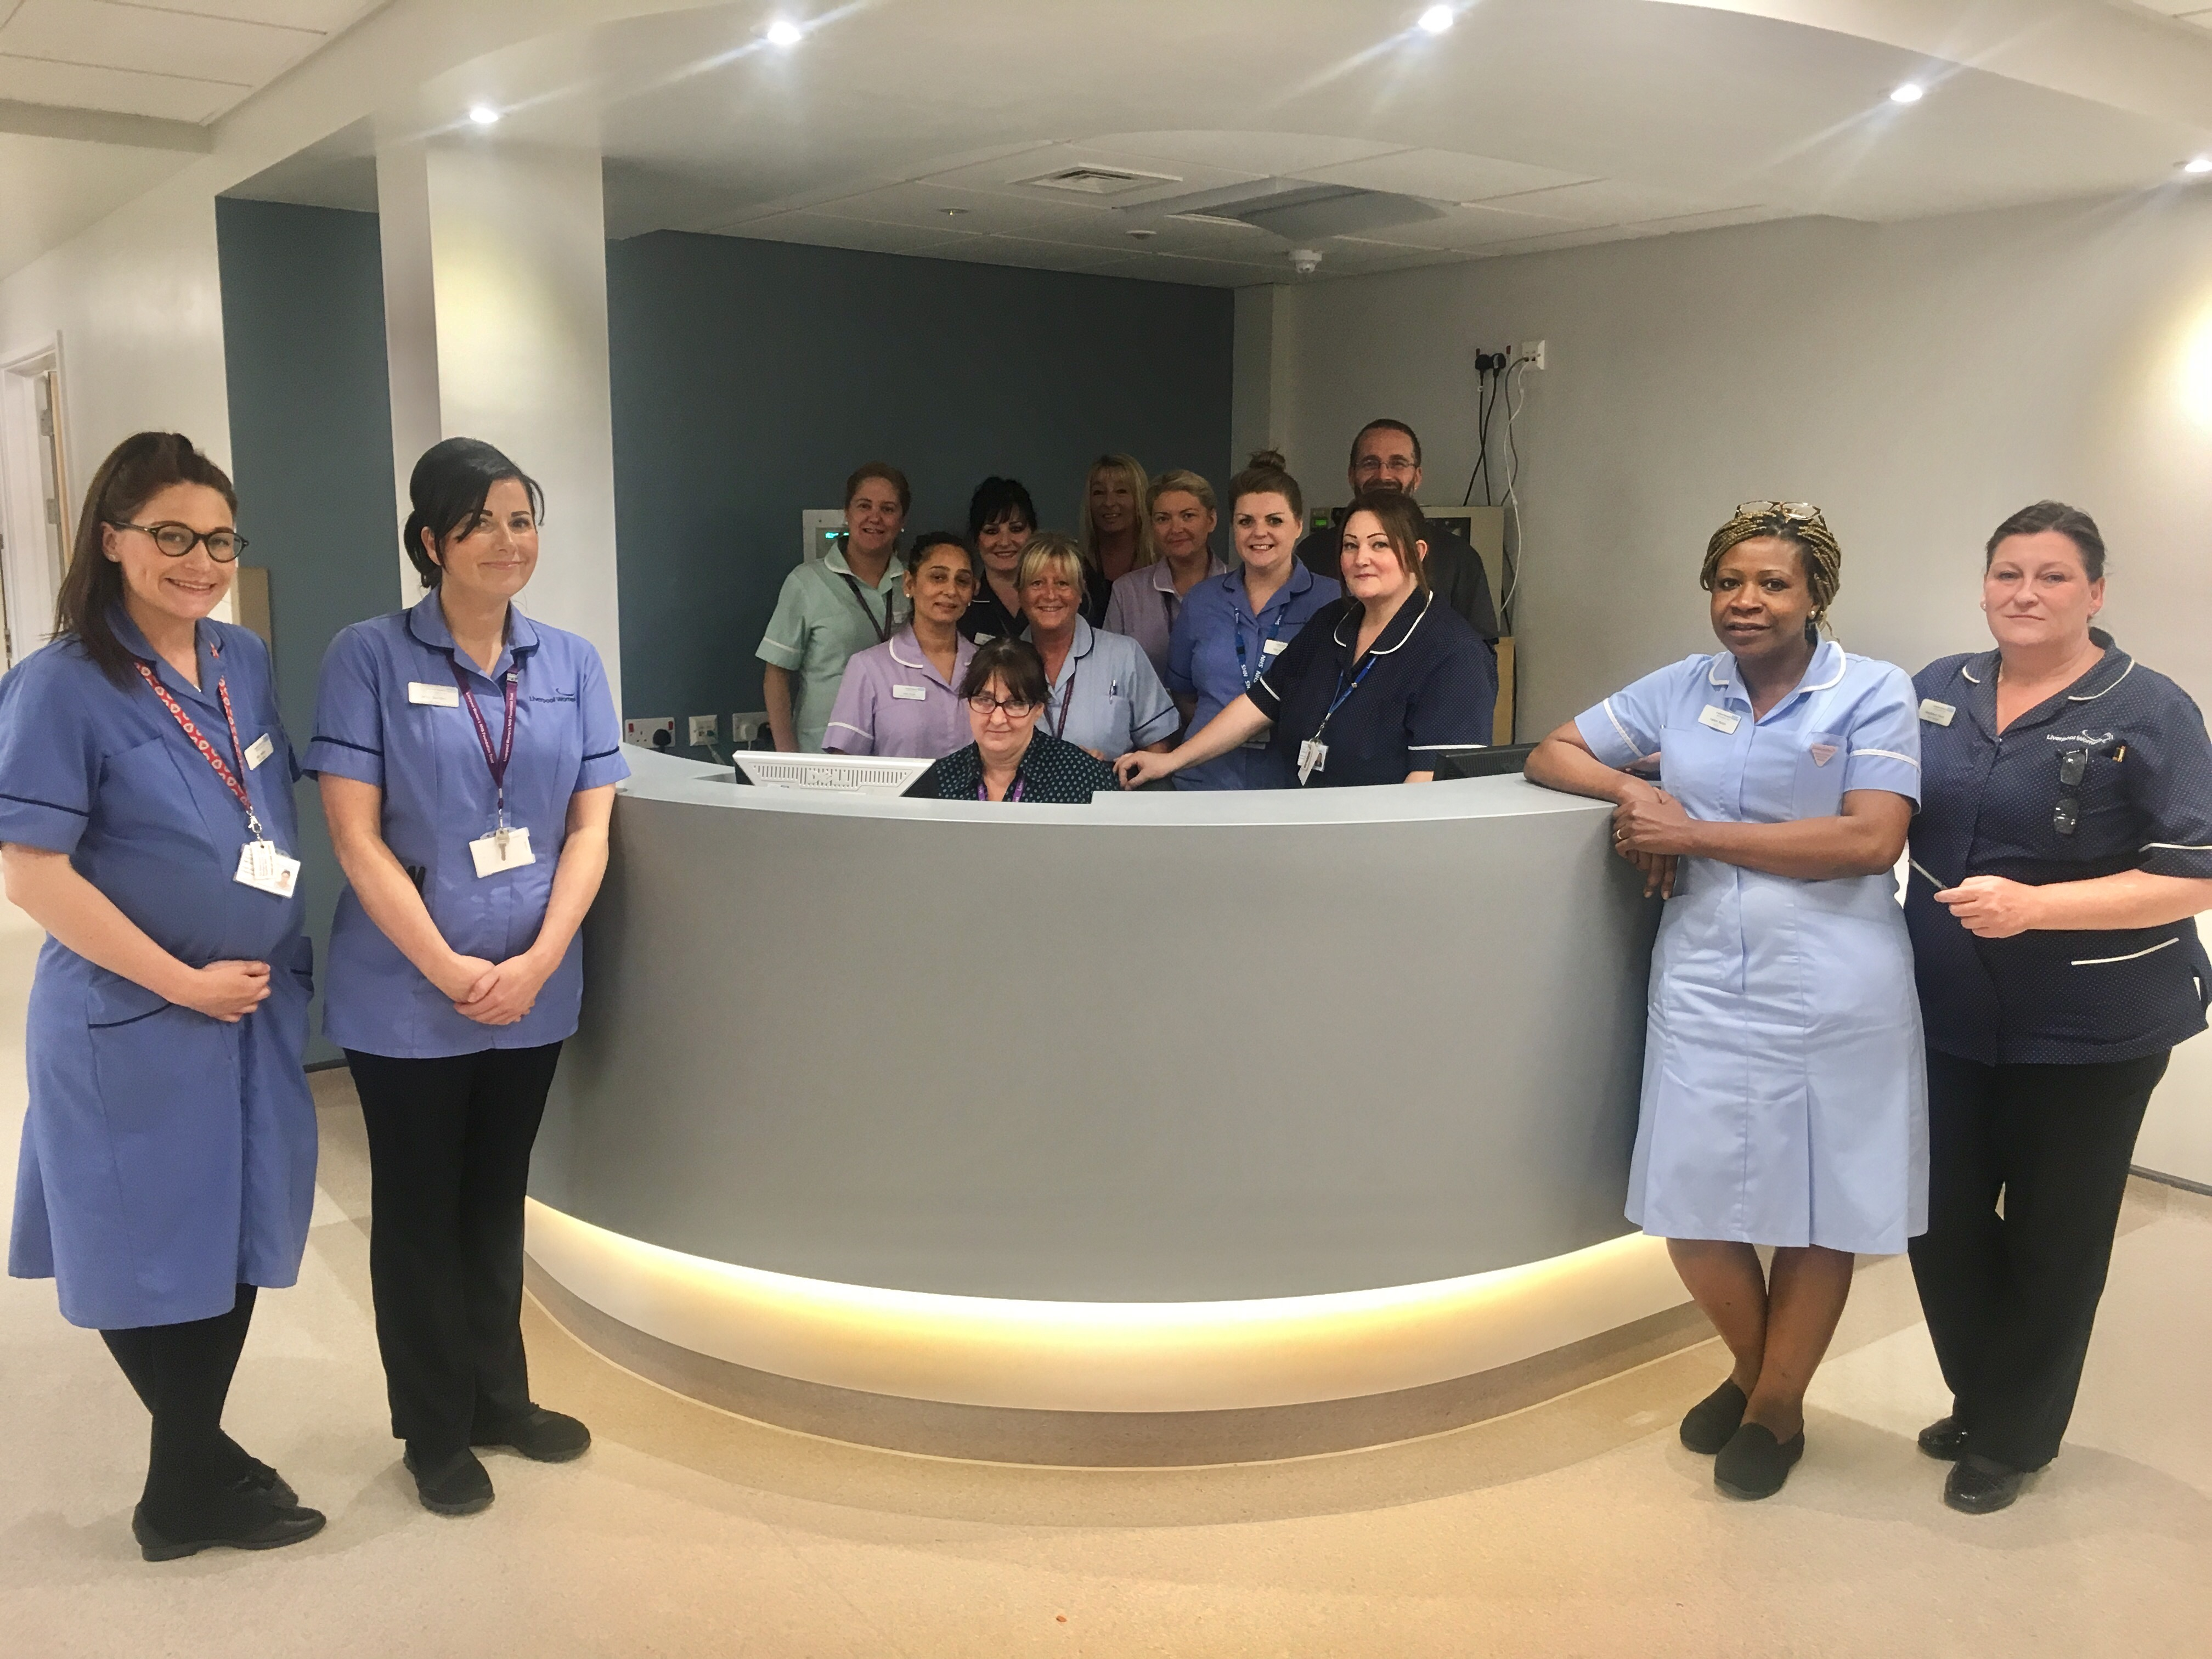 Gynaecology staff members standing in inform around the reception desk